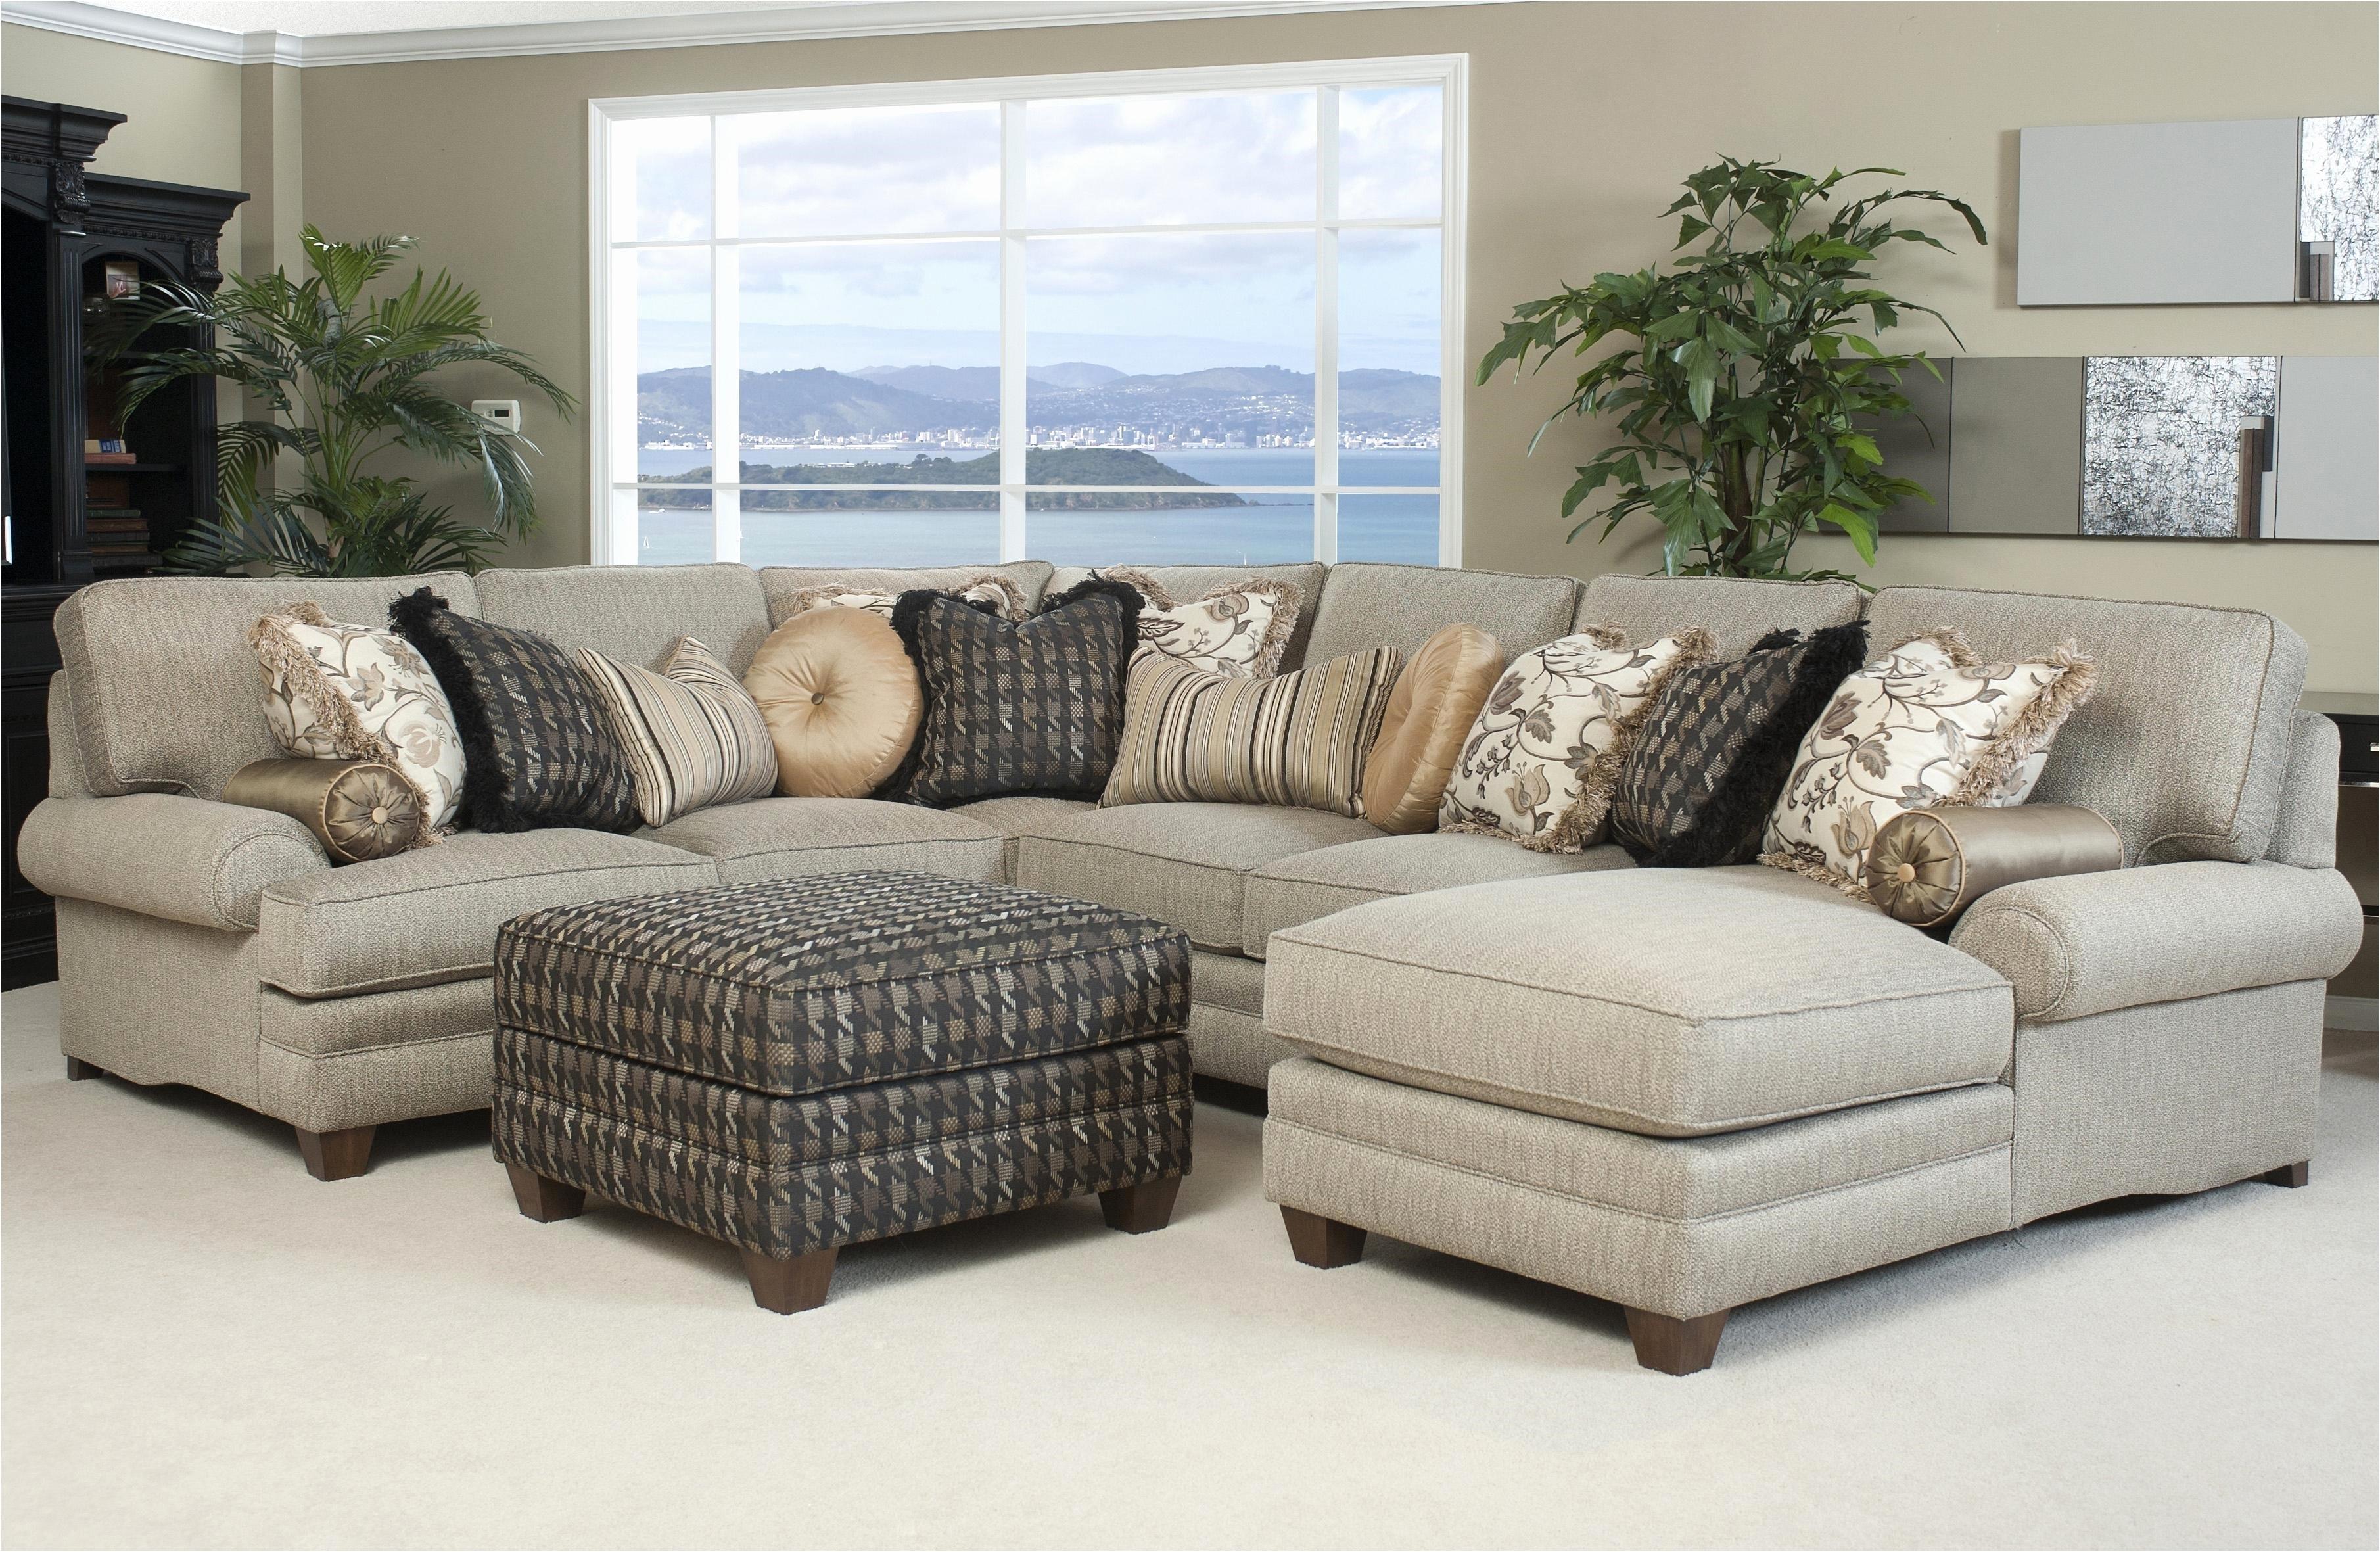 2018 Sofa: Surprising Sectional Sofas Under $500 Cheap Sectionals Under Within Unique Sectional Sofas (View 3 of 15)